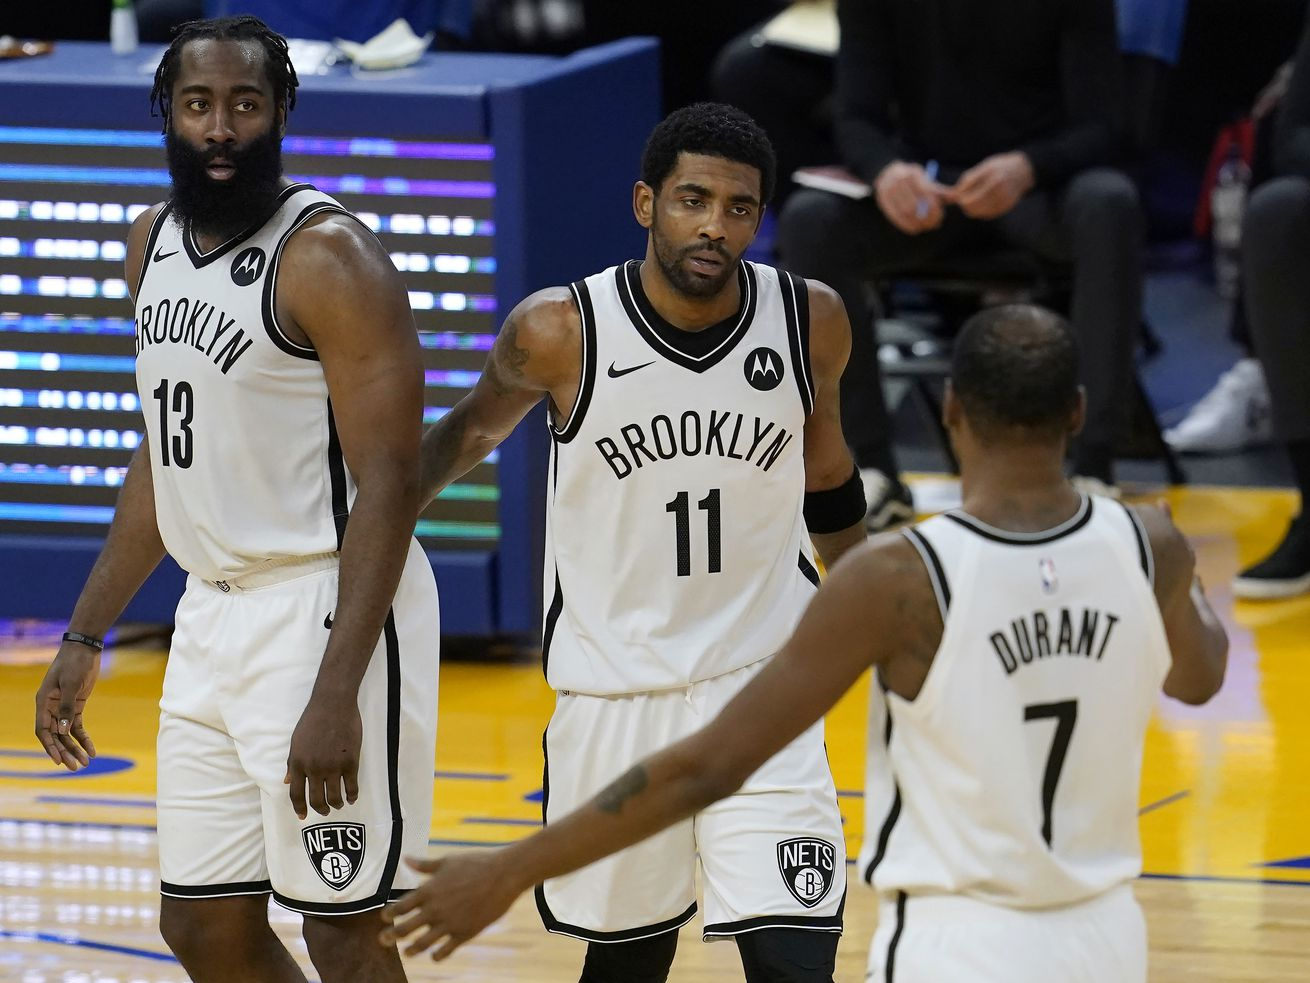 The Brooklyn Nets' Kyrie Irving, James Harden and forward Kevin Durant battled injuries throughout the 2020-21 season.